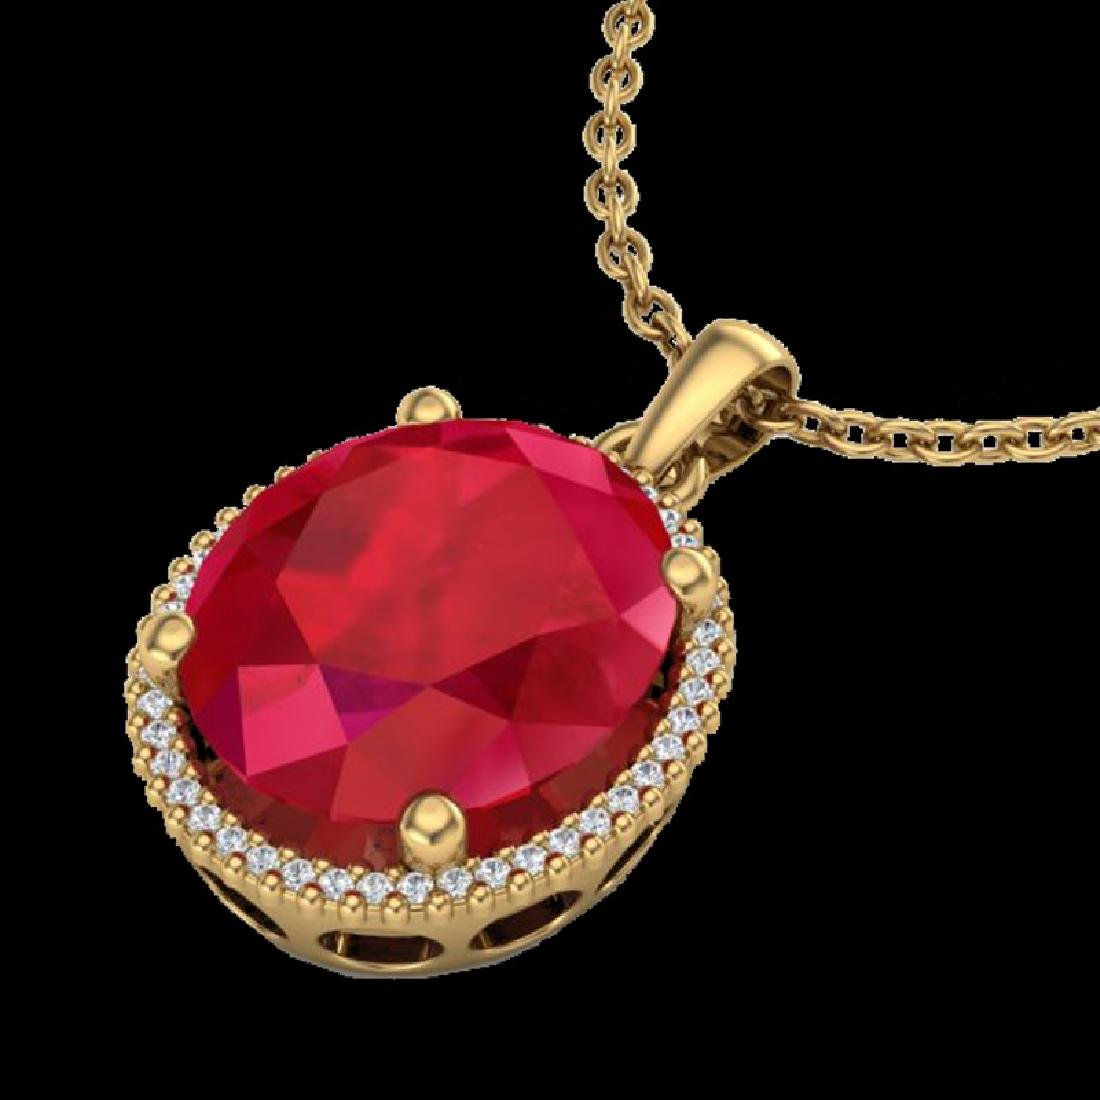 12 CTW Ruby & Micro Pave VS/SI Diamond Halo Necklace - 2